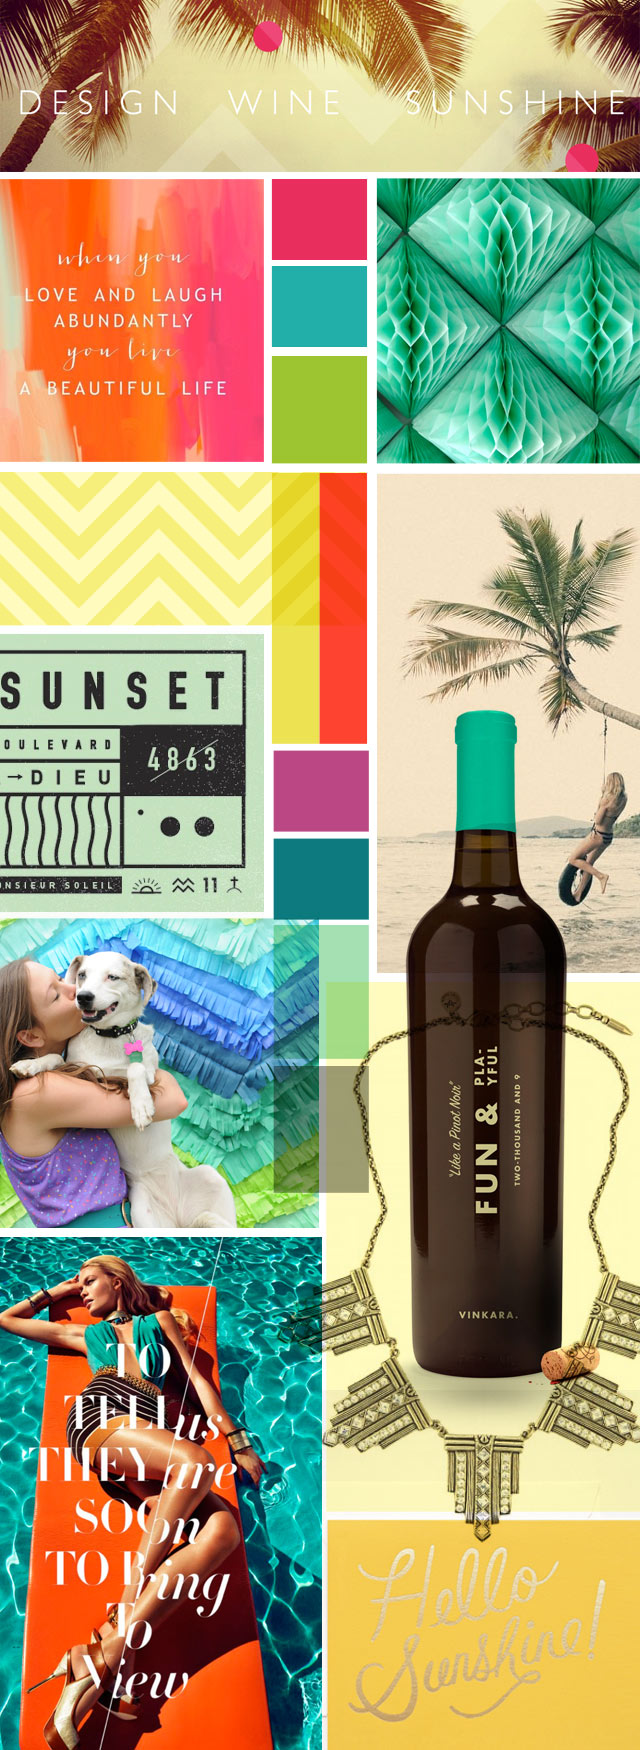 DEsign-Wine-Sunshine-Moodboard